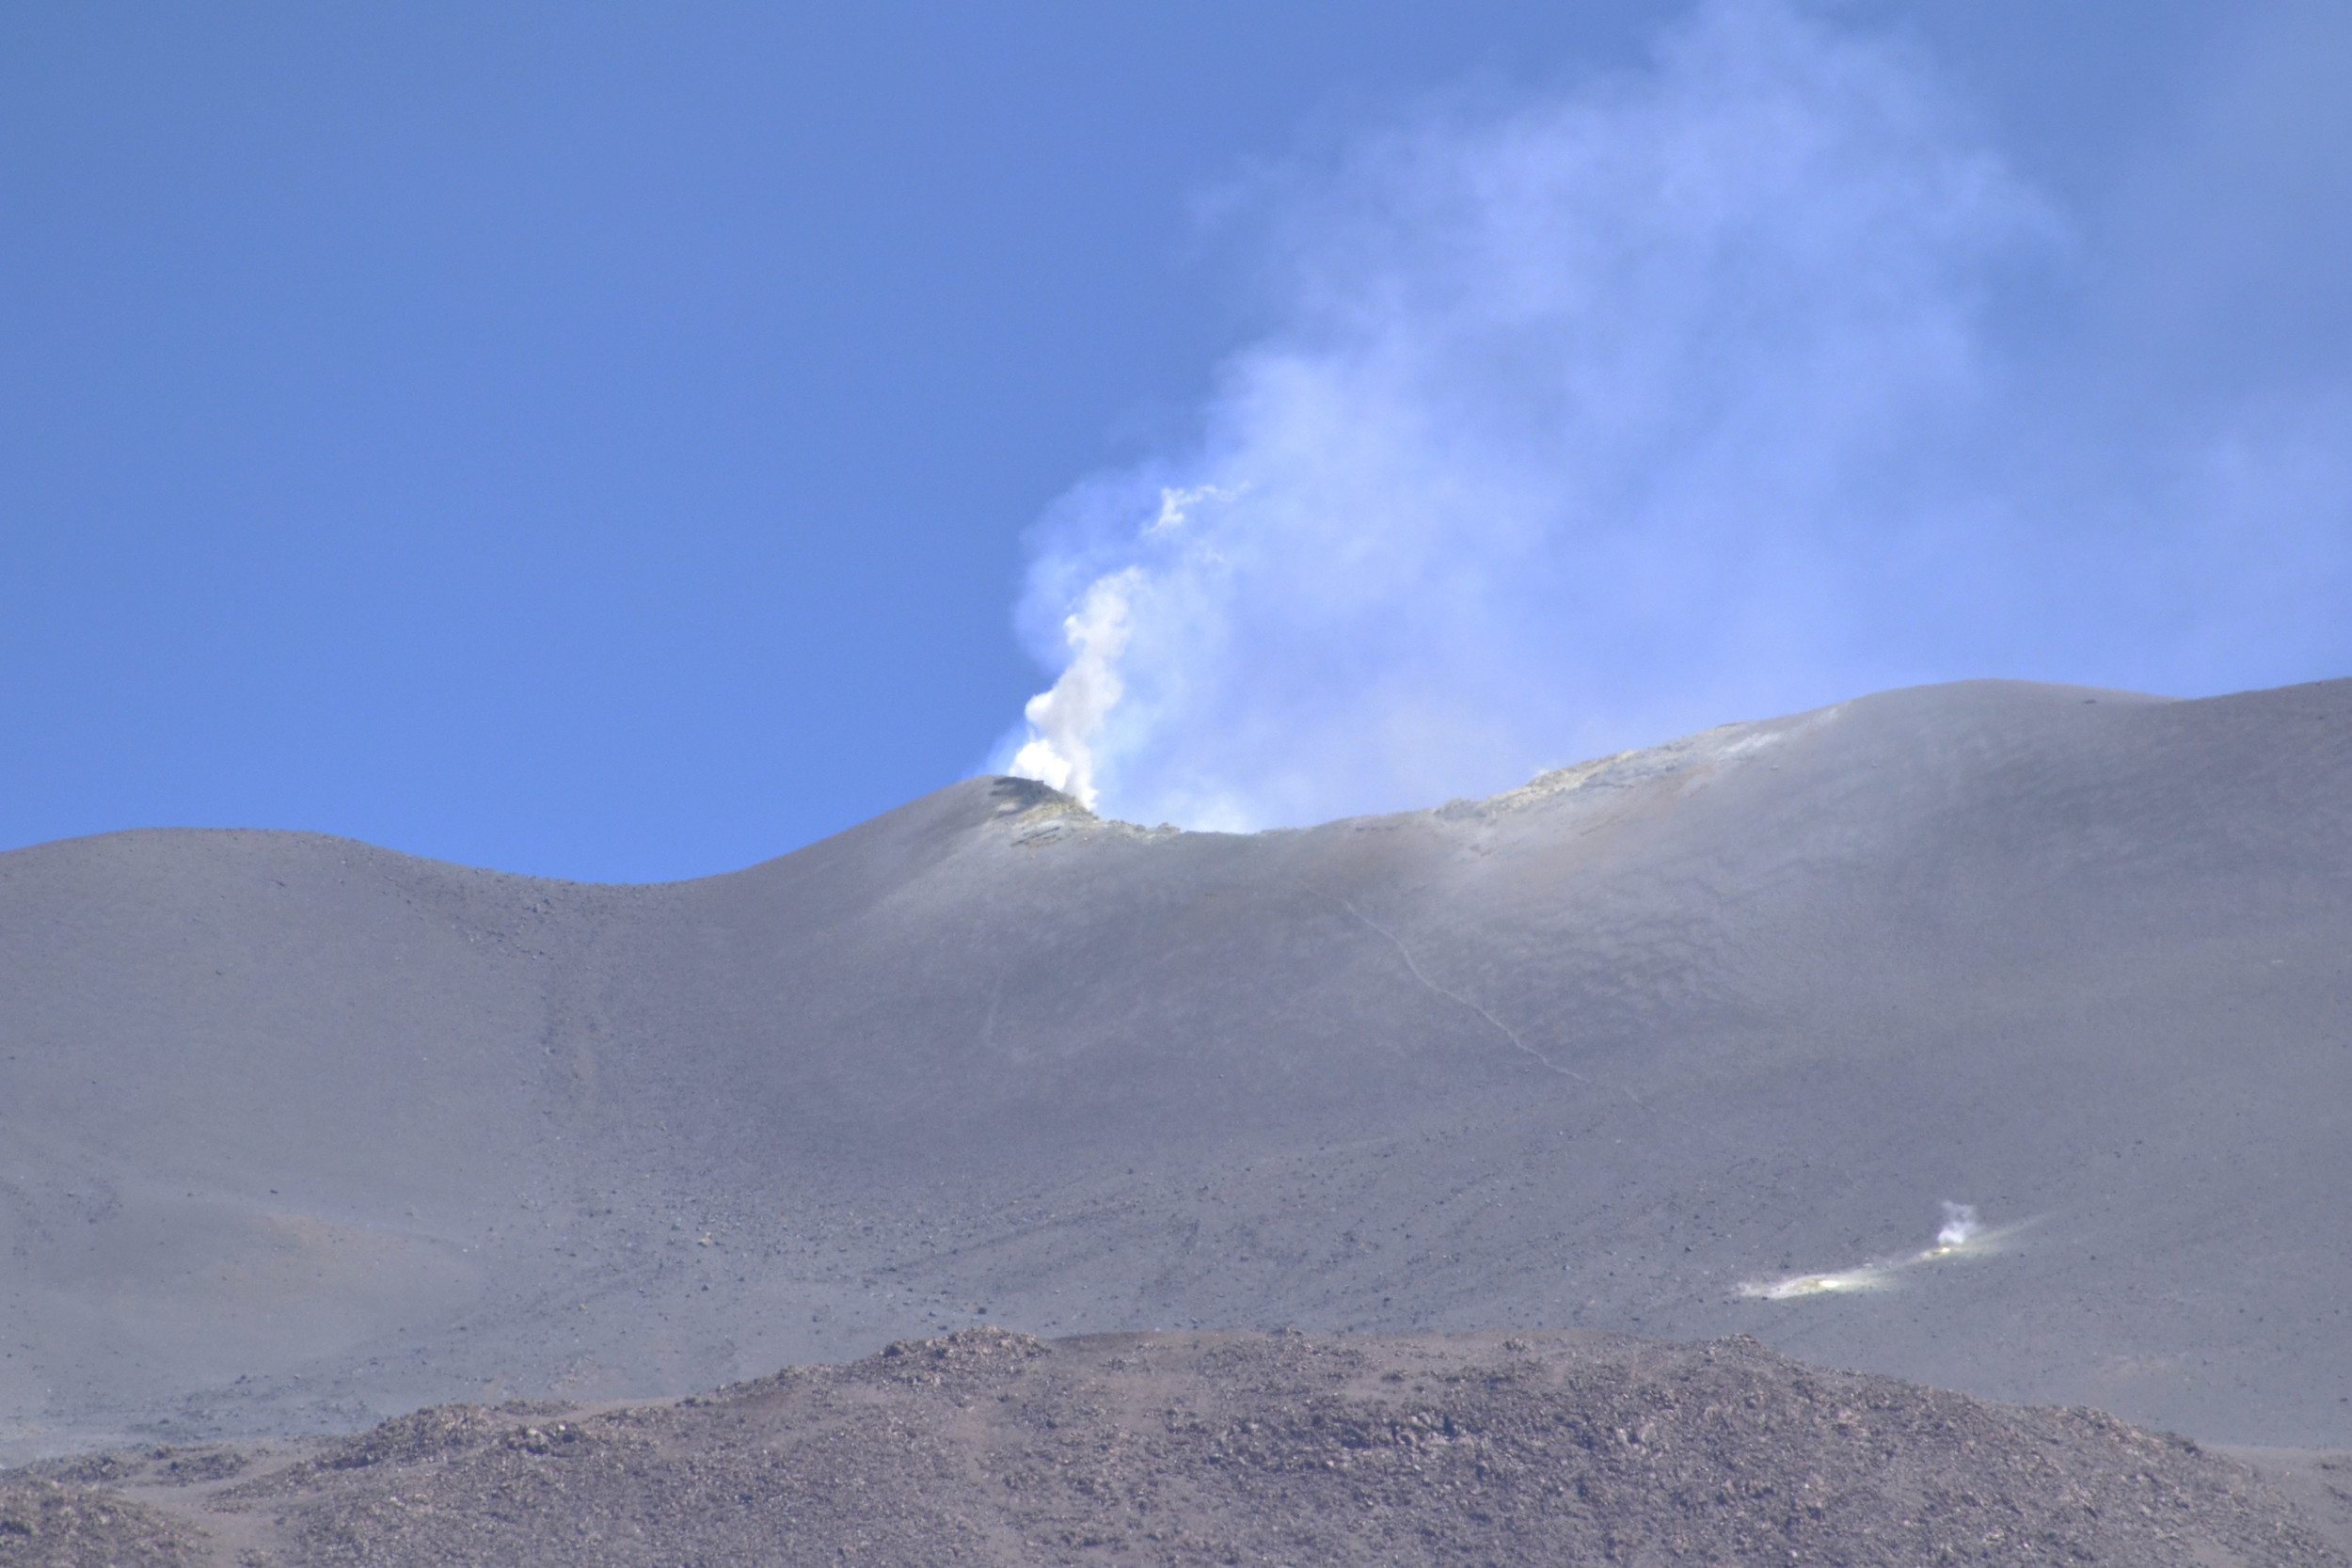 Just another set of fumaroles?